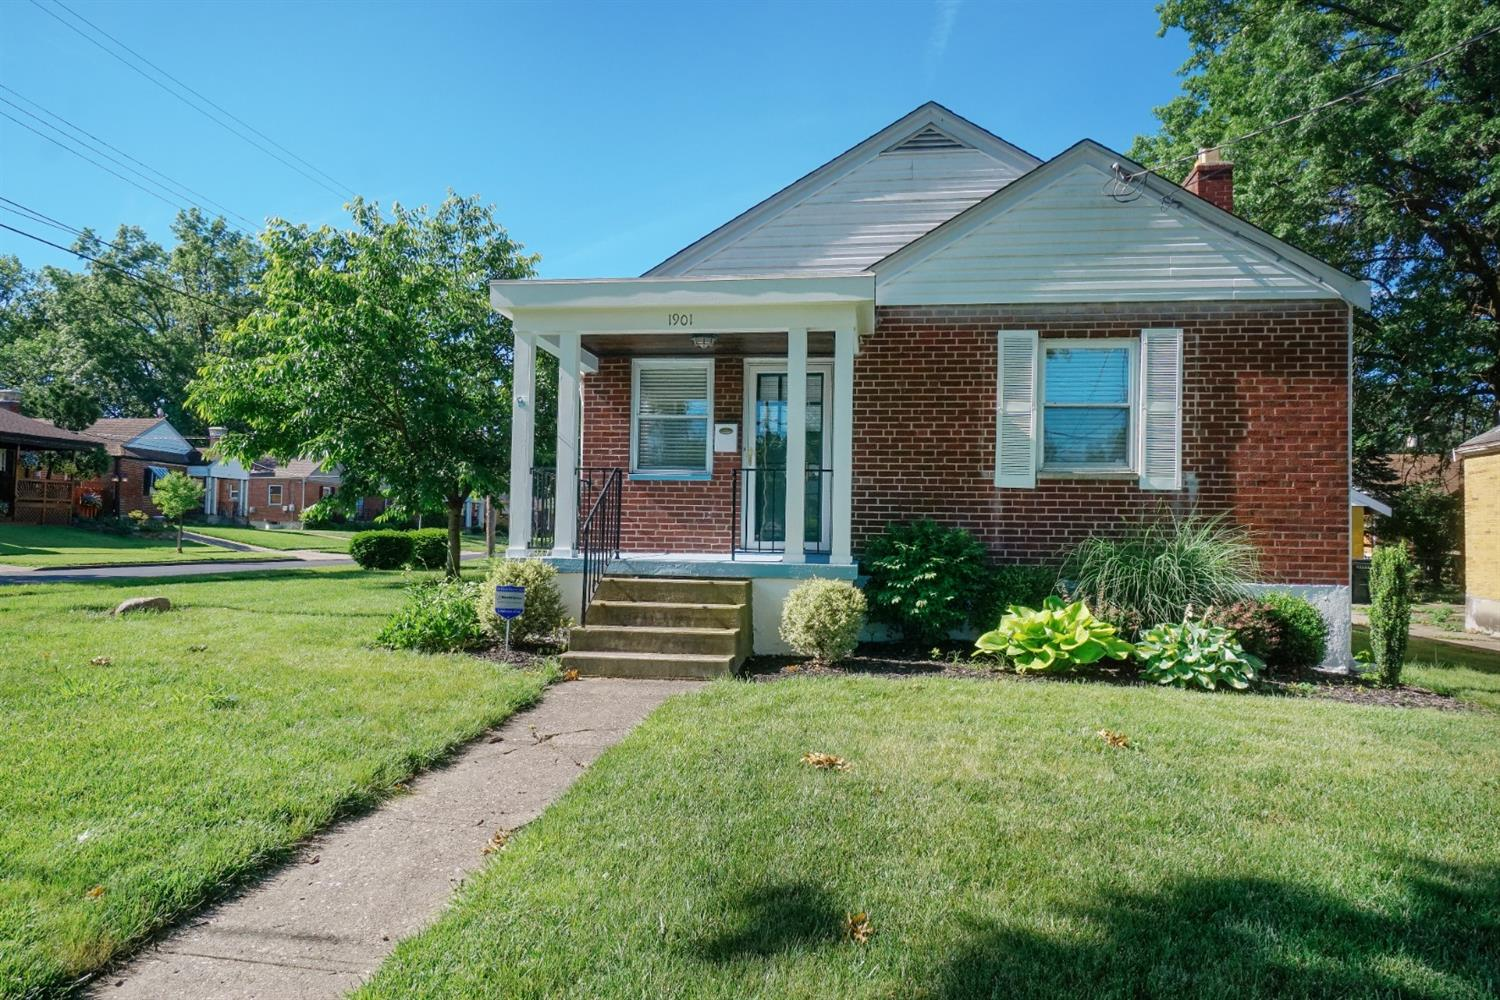 Property for sale at 1901 Acorn Drive, North College Hill,  Ohio 45231